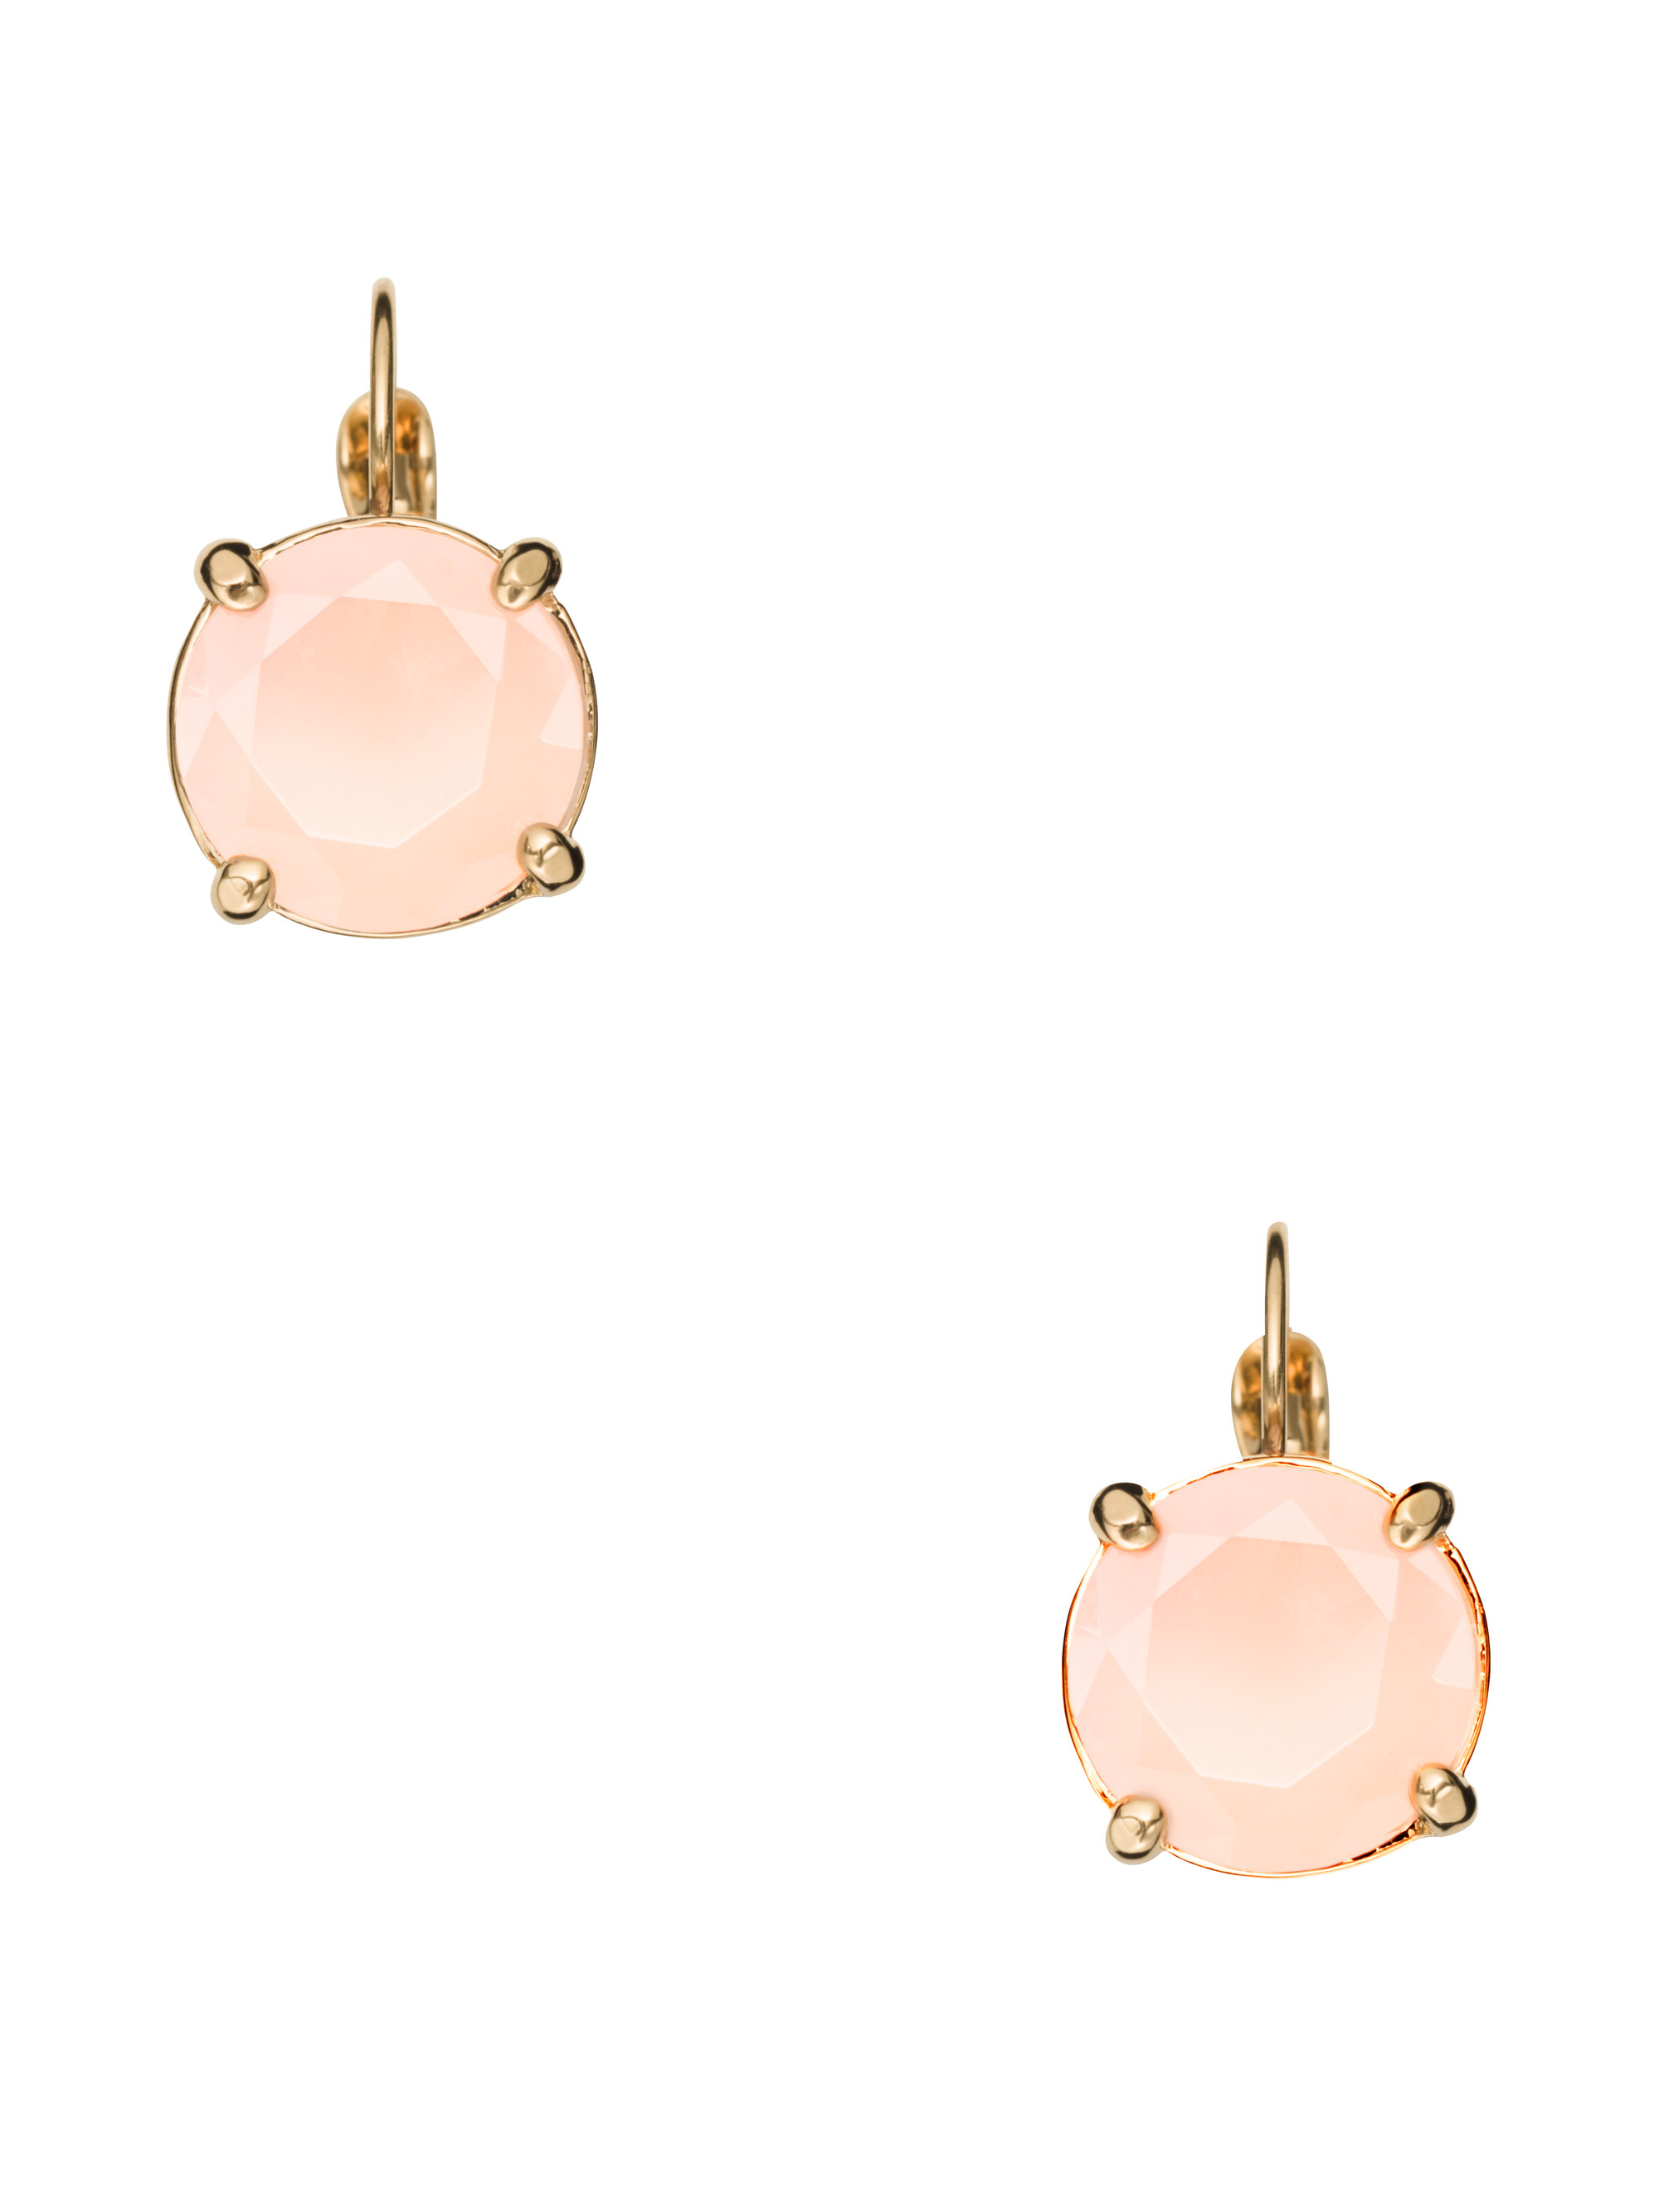 Pink Kate Spade Earrings Image collections - Jewelry Design Examples